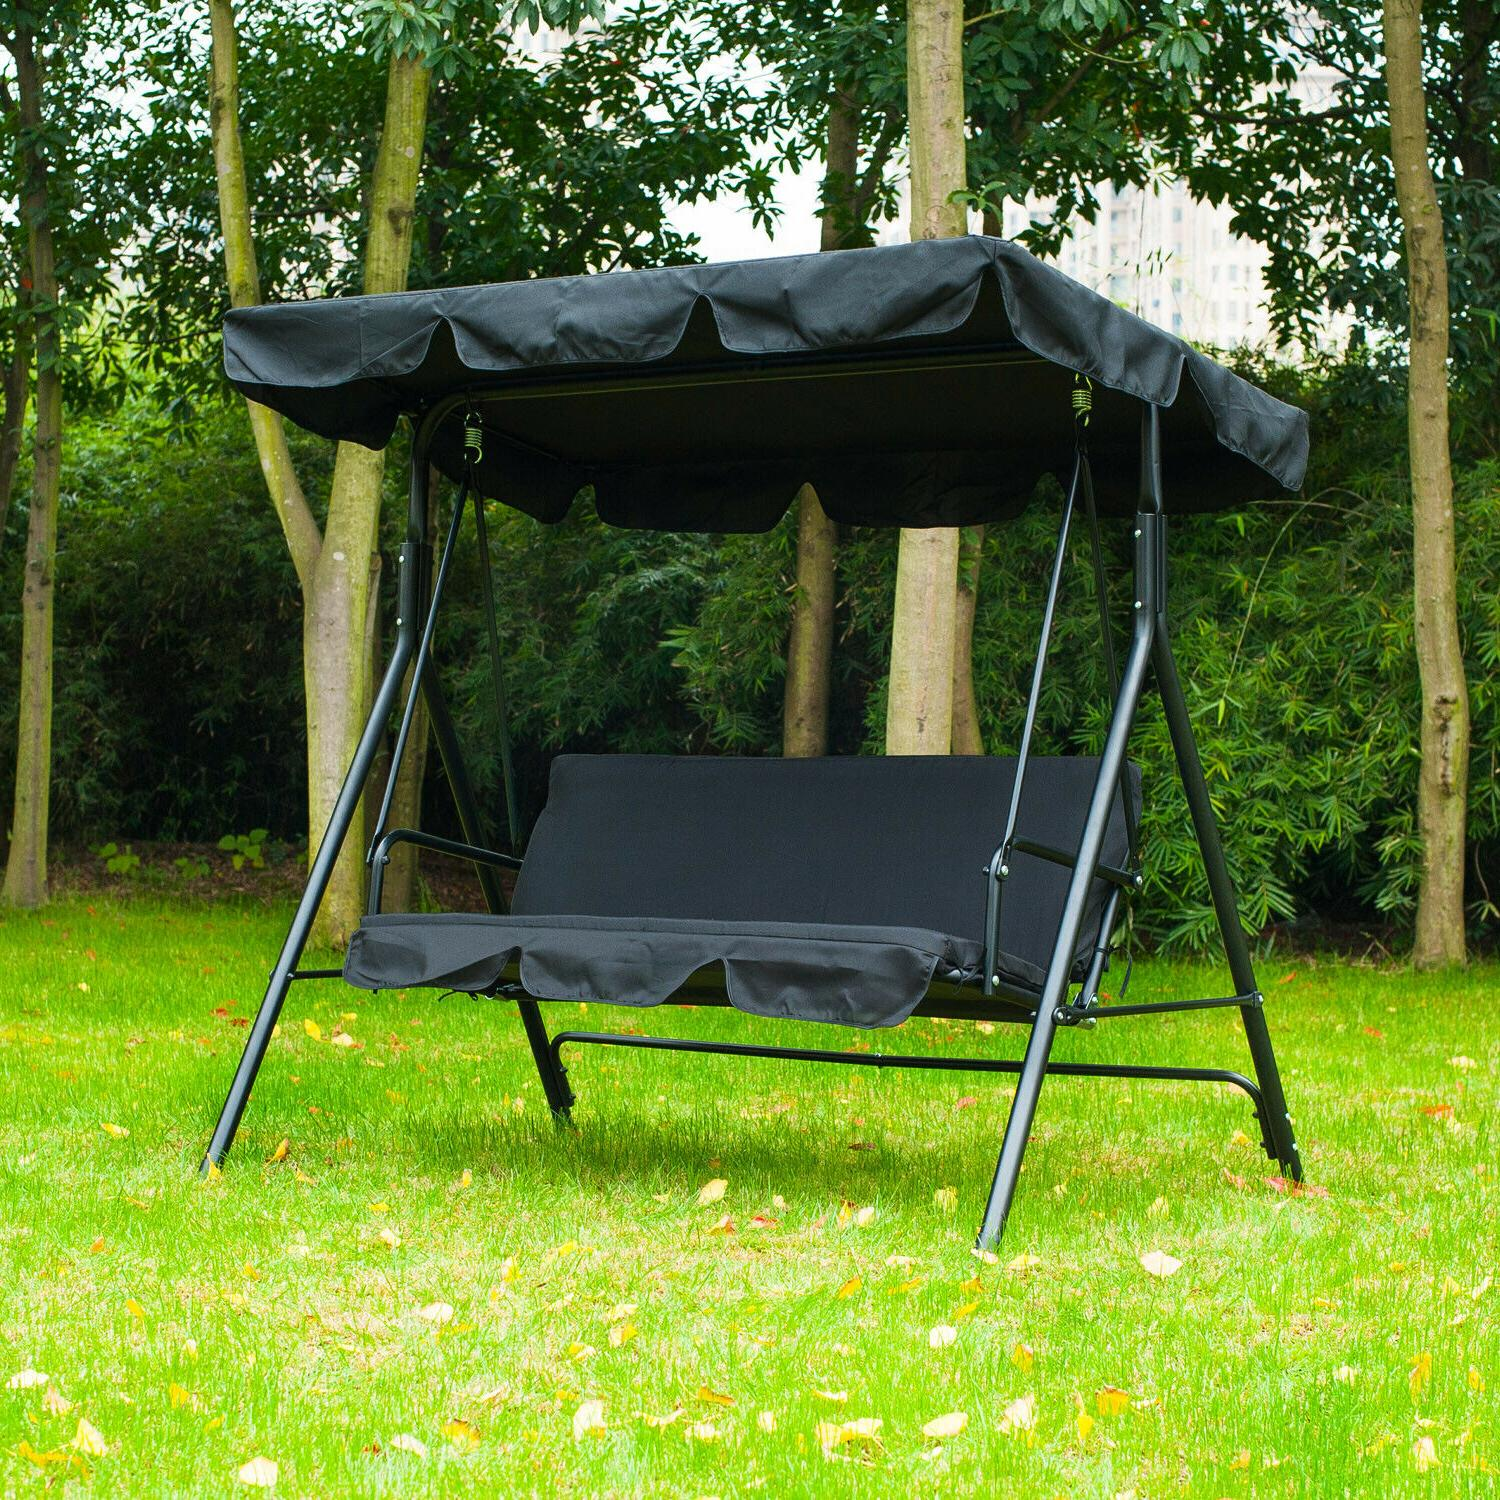 patio swing chair 3 person